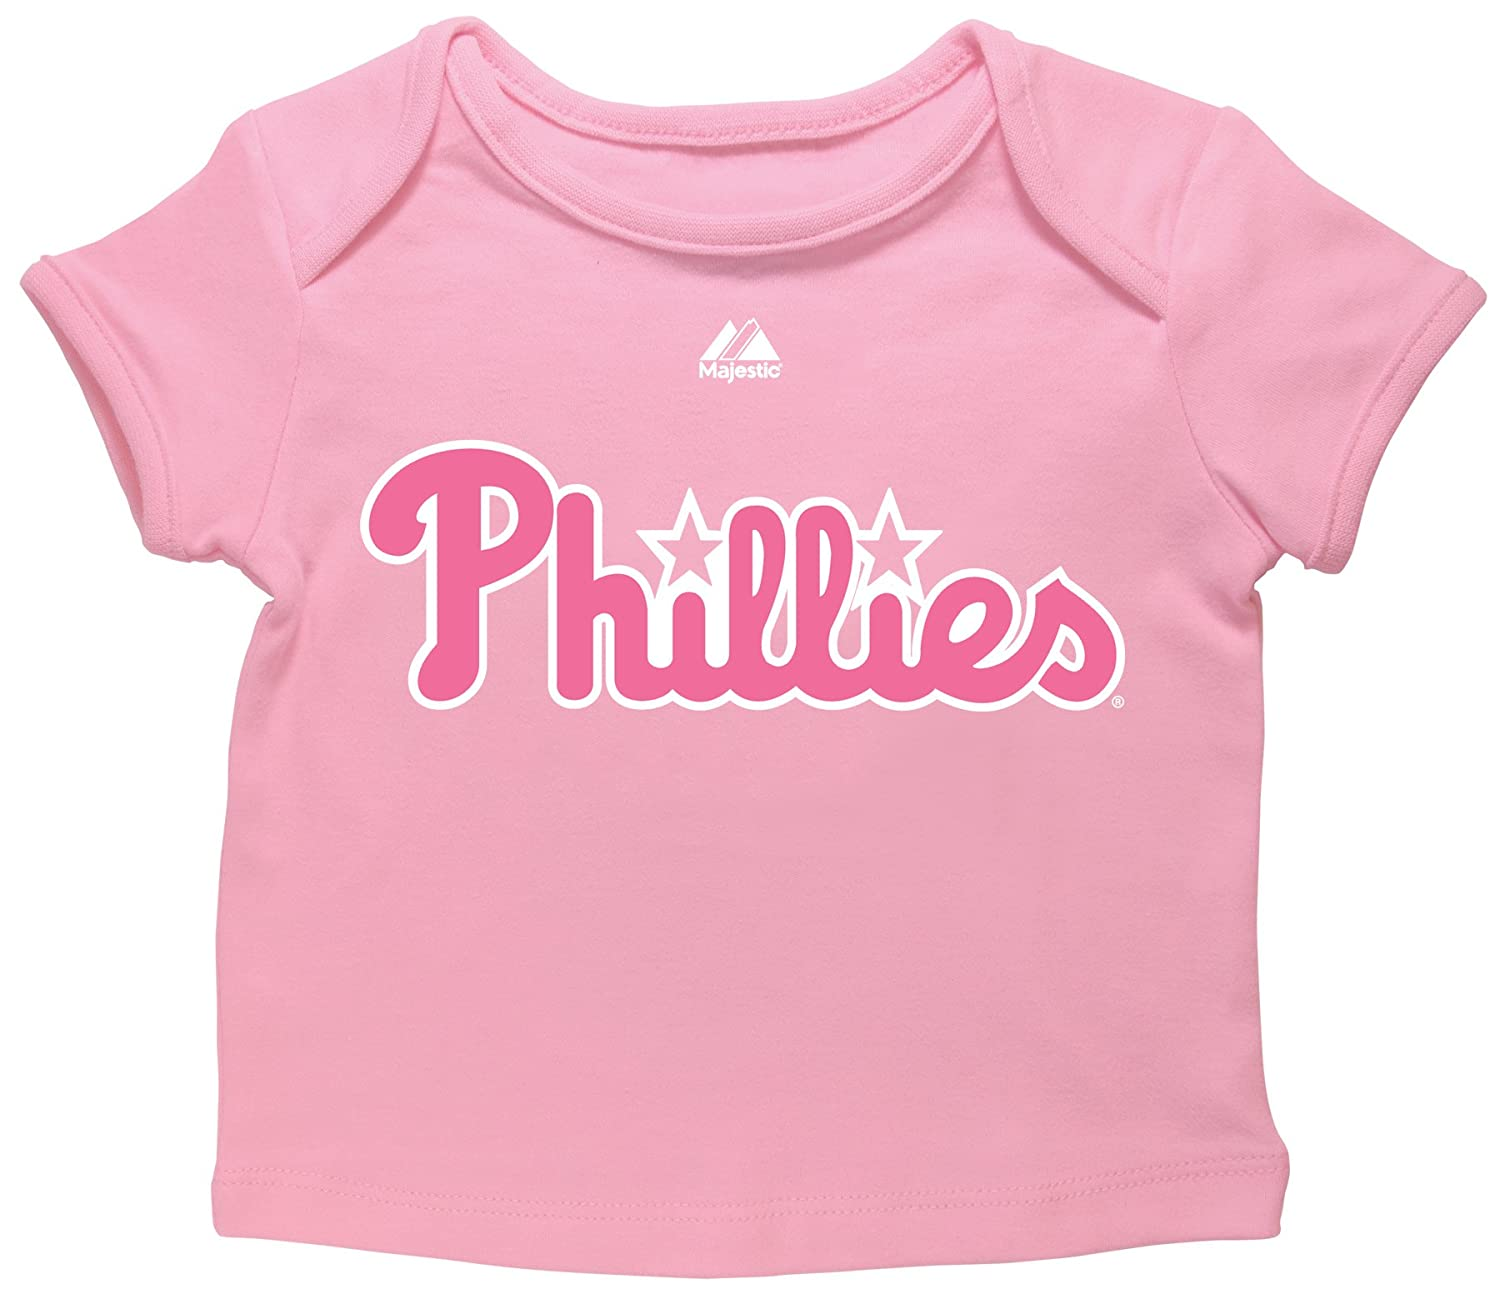 separation shoes 42249 2ea82 Majestic MLB Philadelphia Phillies Chase Utley #26 Newborn Girls' Player  Name And Number Envelope Tee By